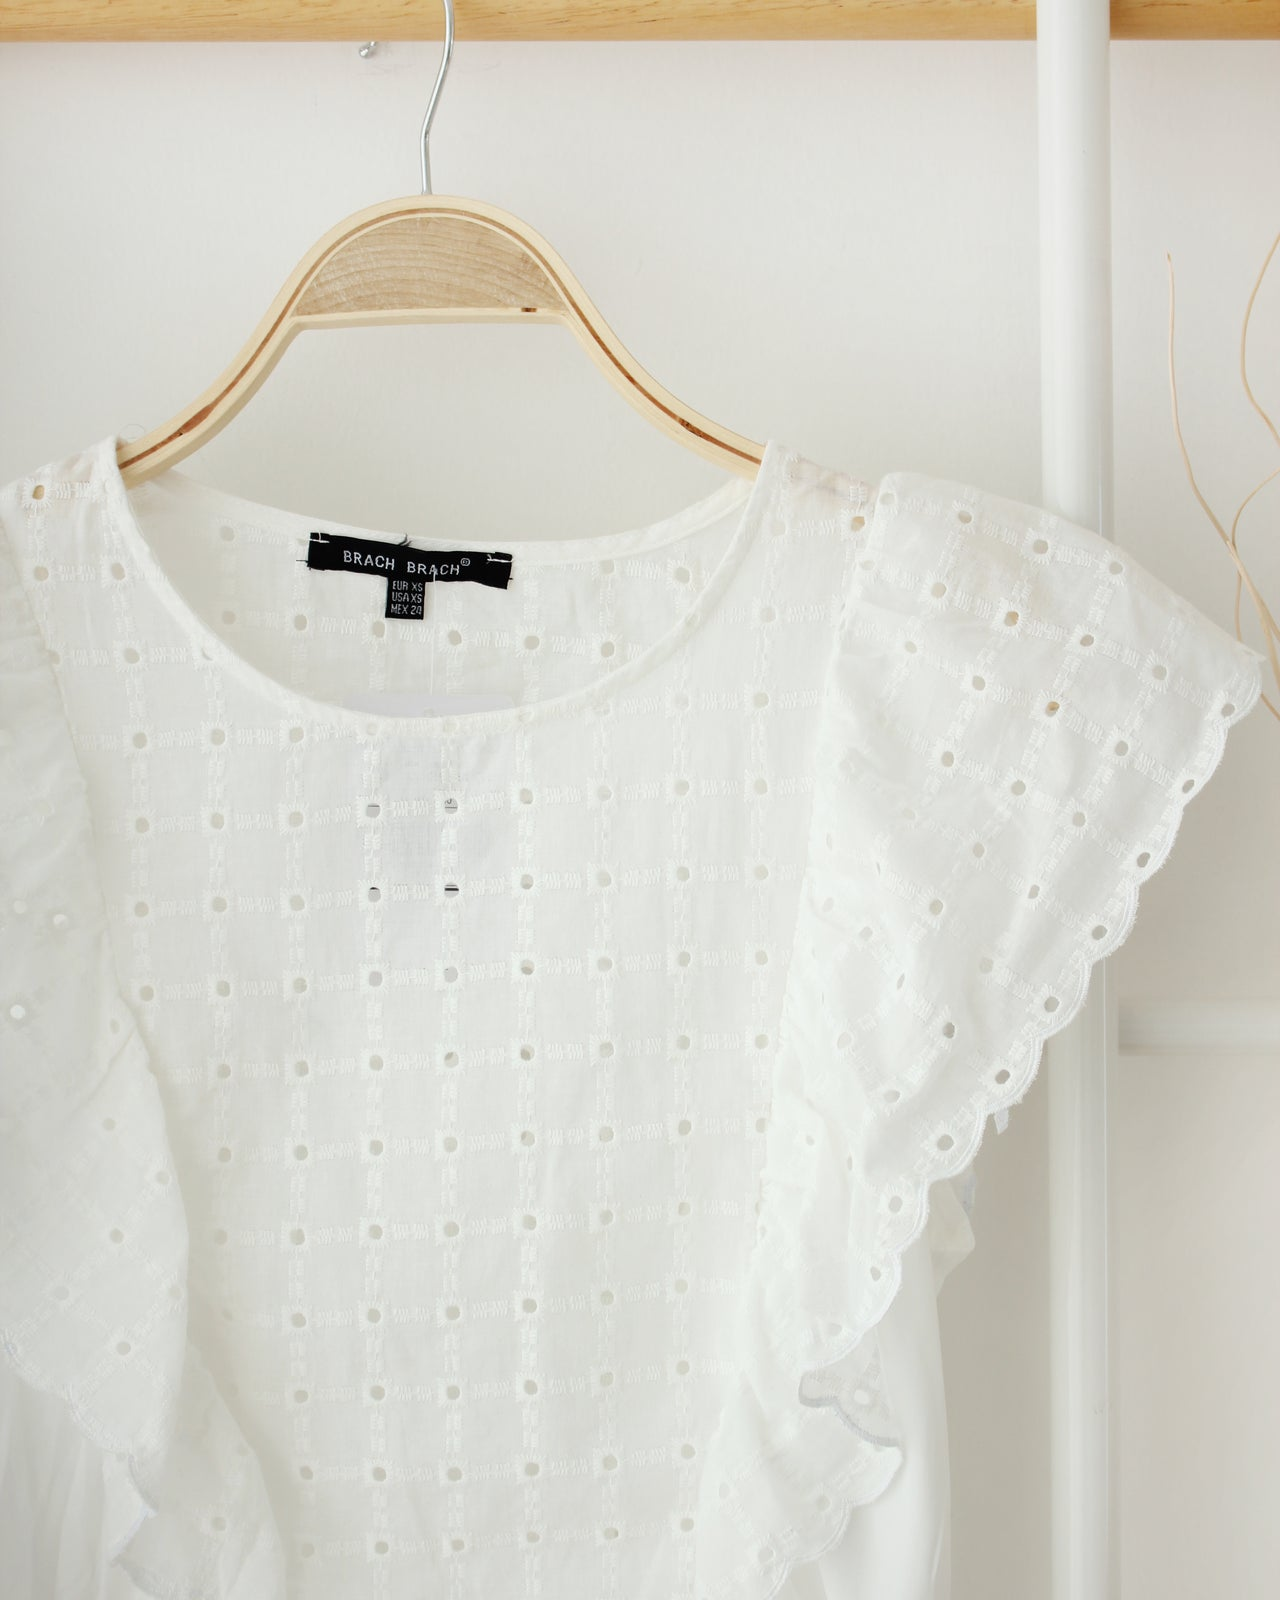 Kelly Crochet Top - LovelyMadness Clothing Online Fashion Malaysia